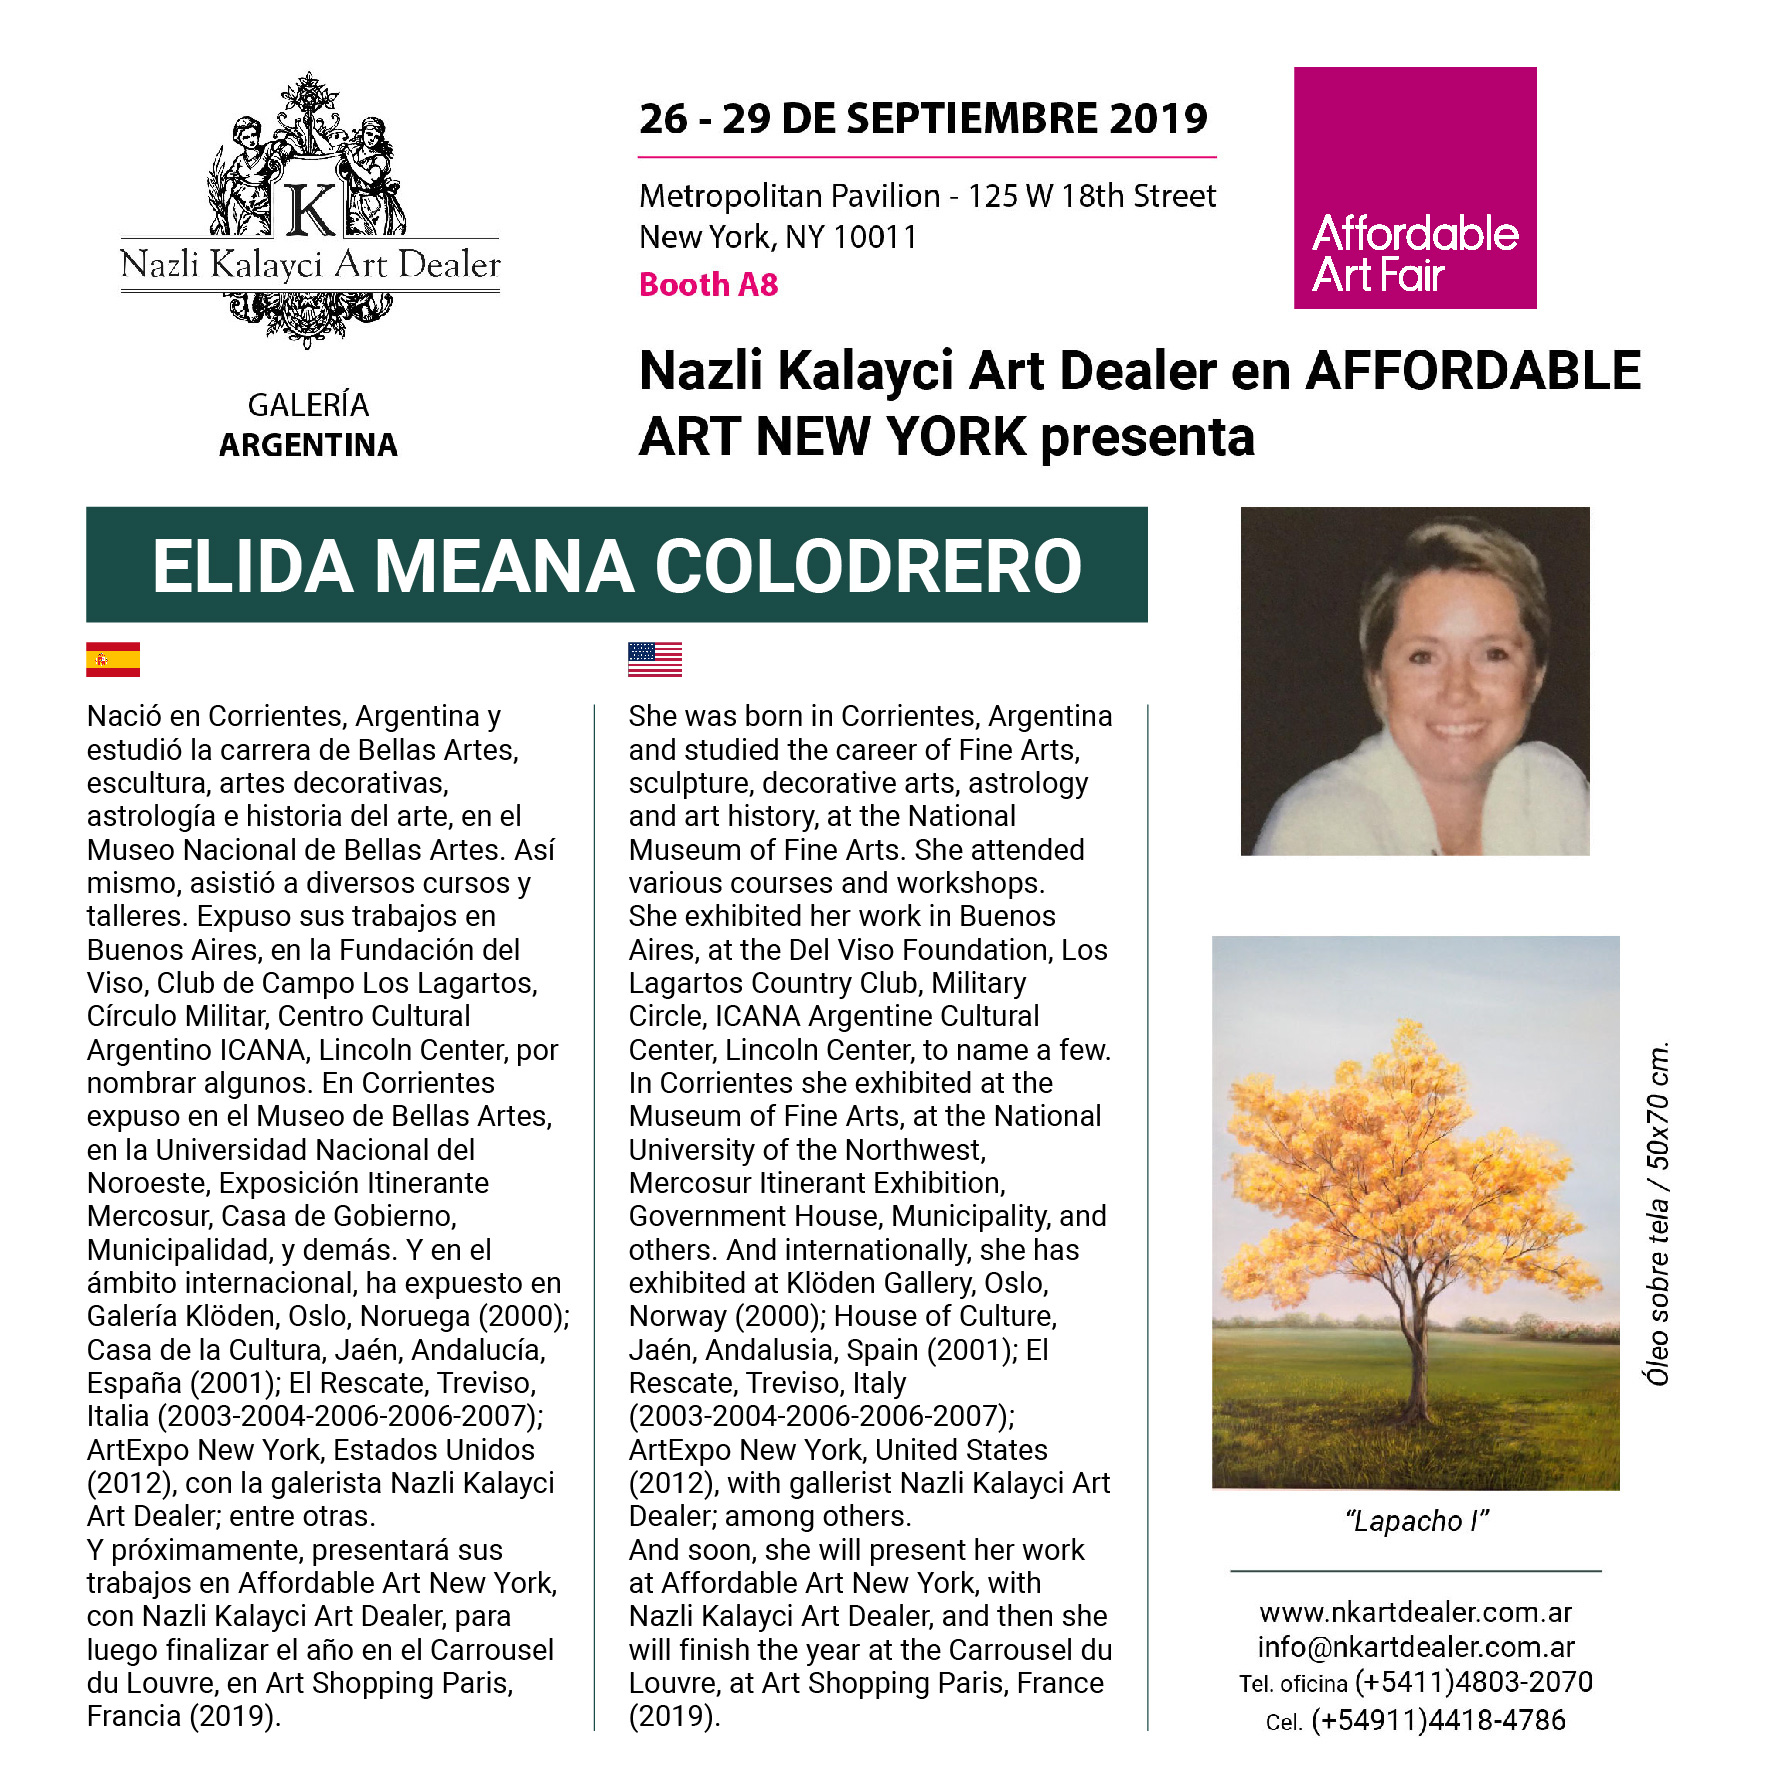 E. Meana Colodrero - Affordable Art